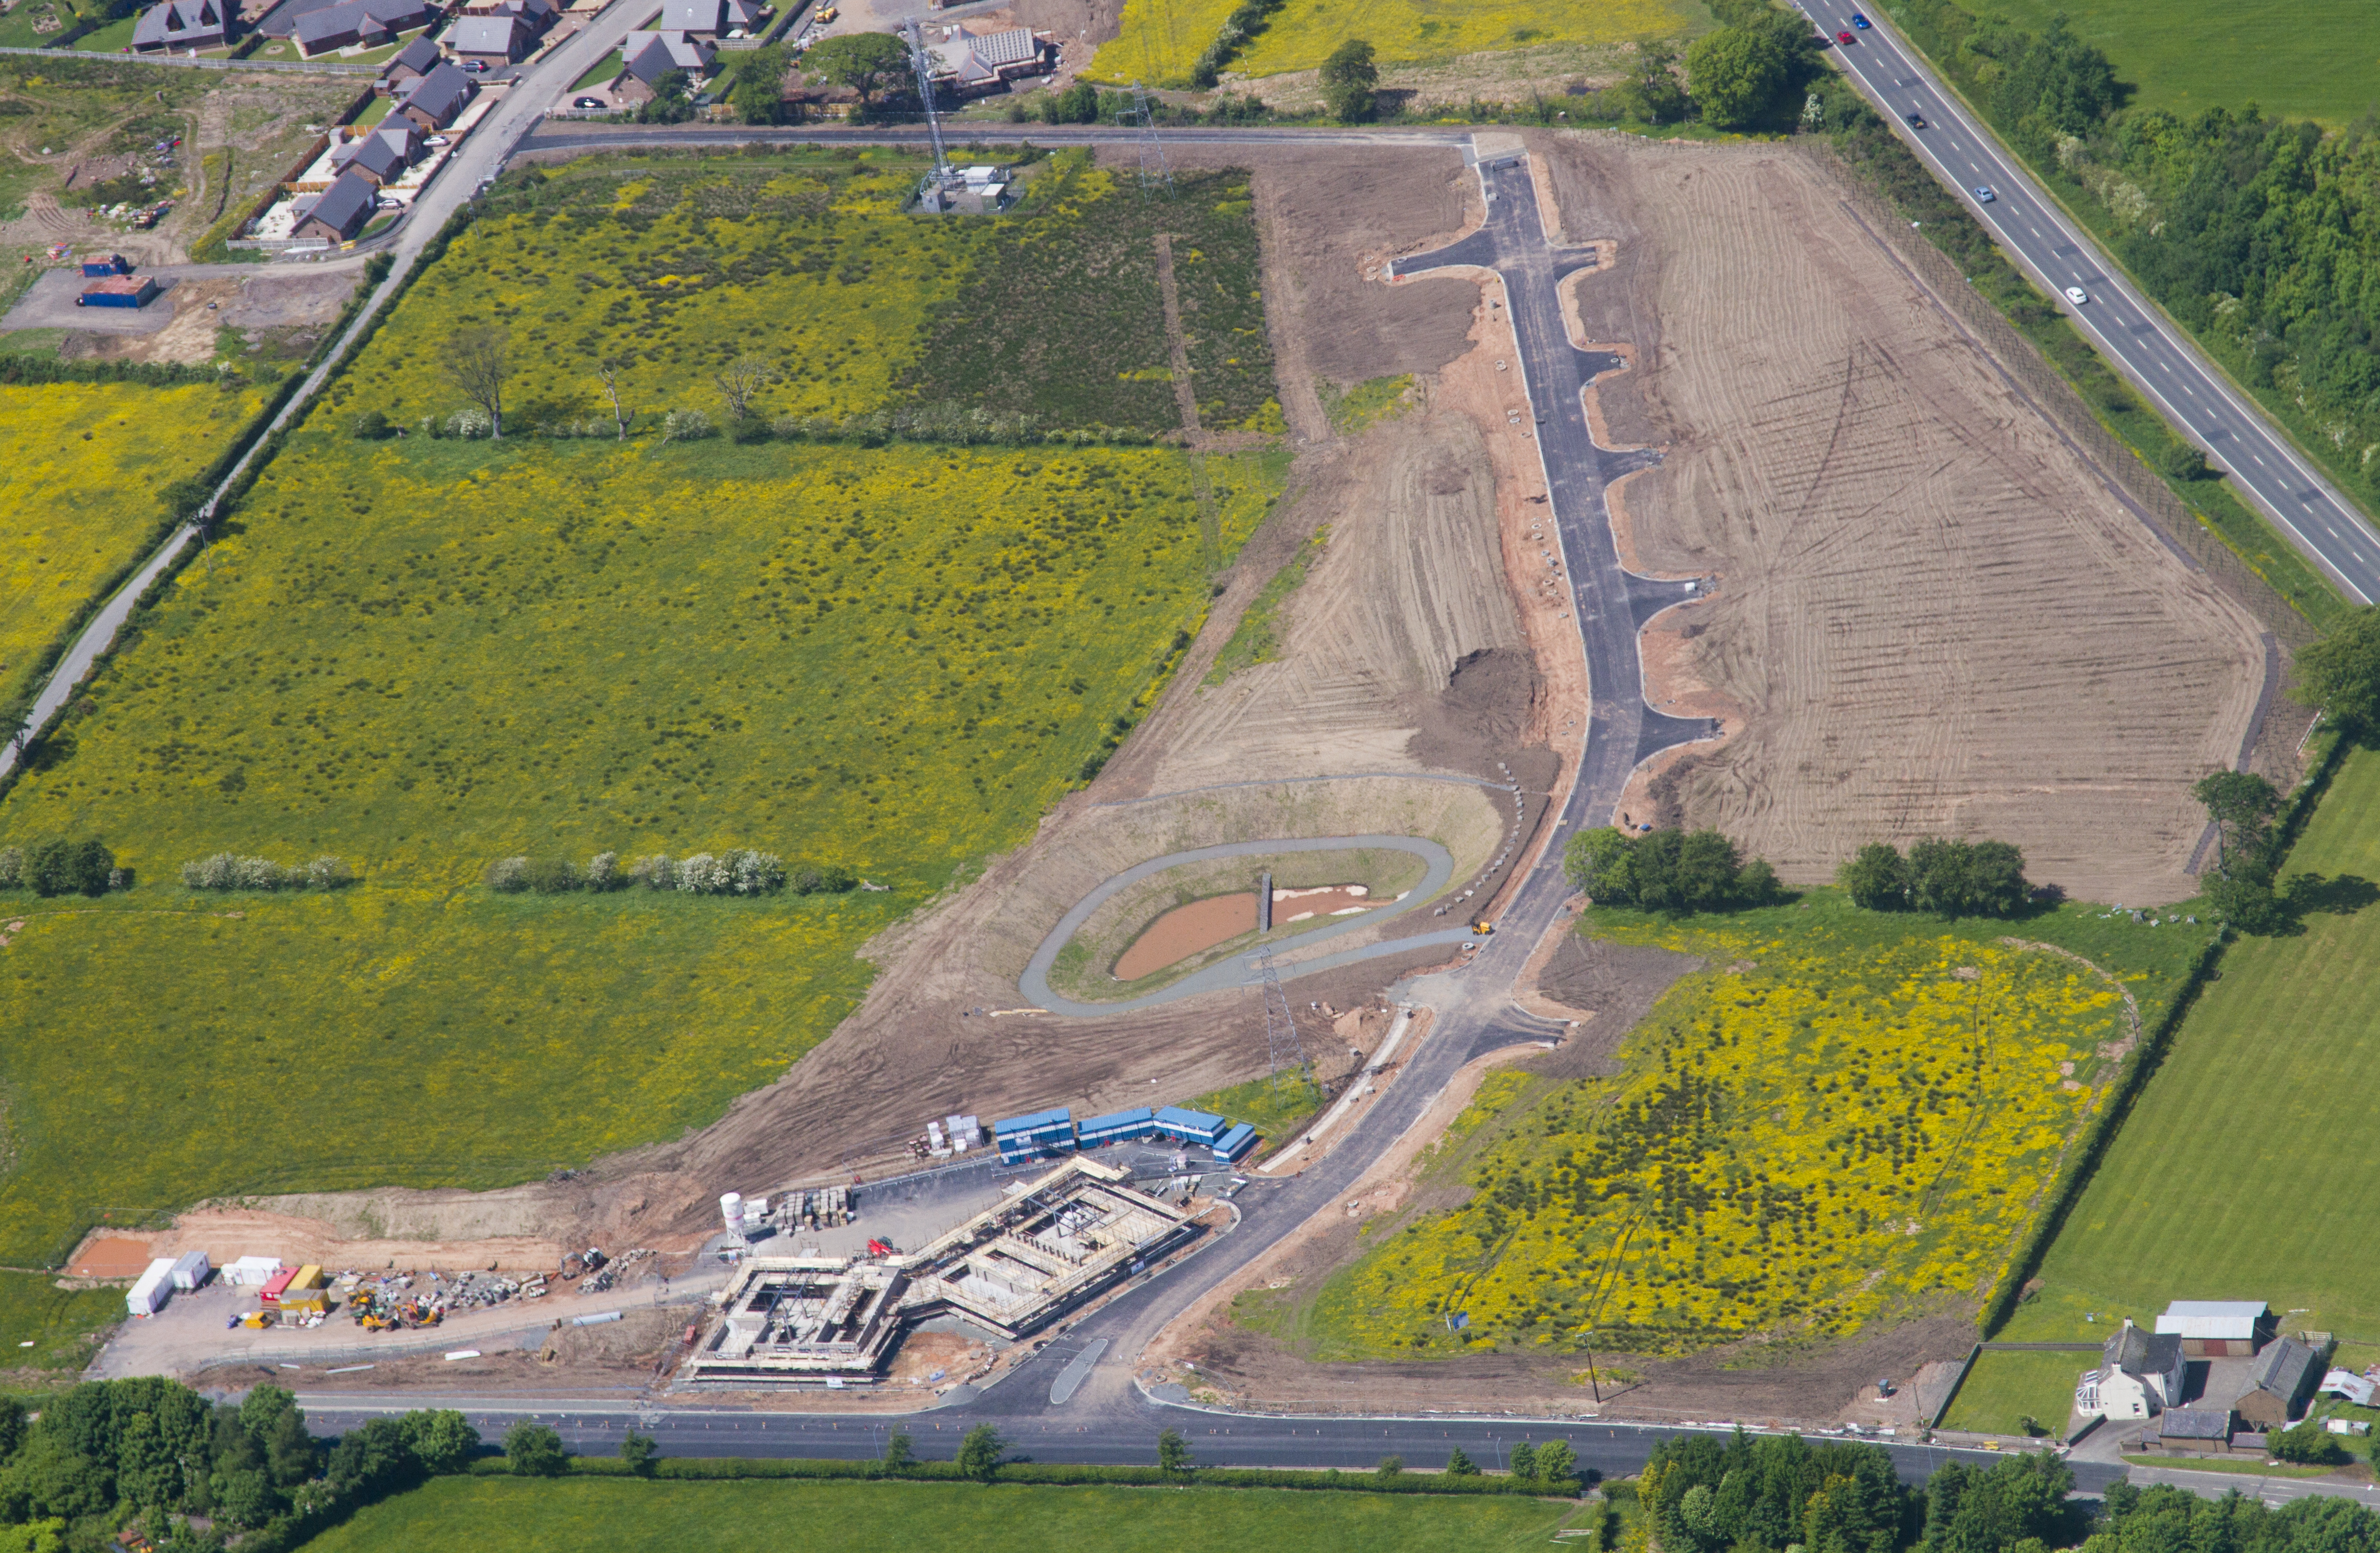 Aerial view of Annan Regional Business Park